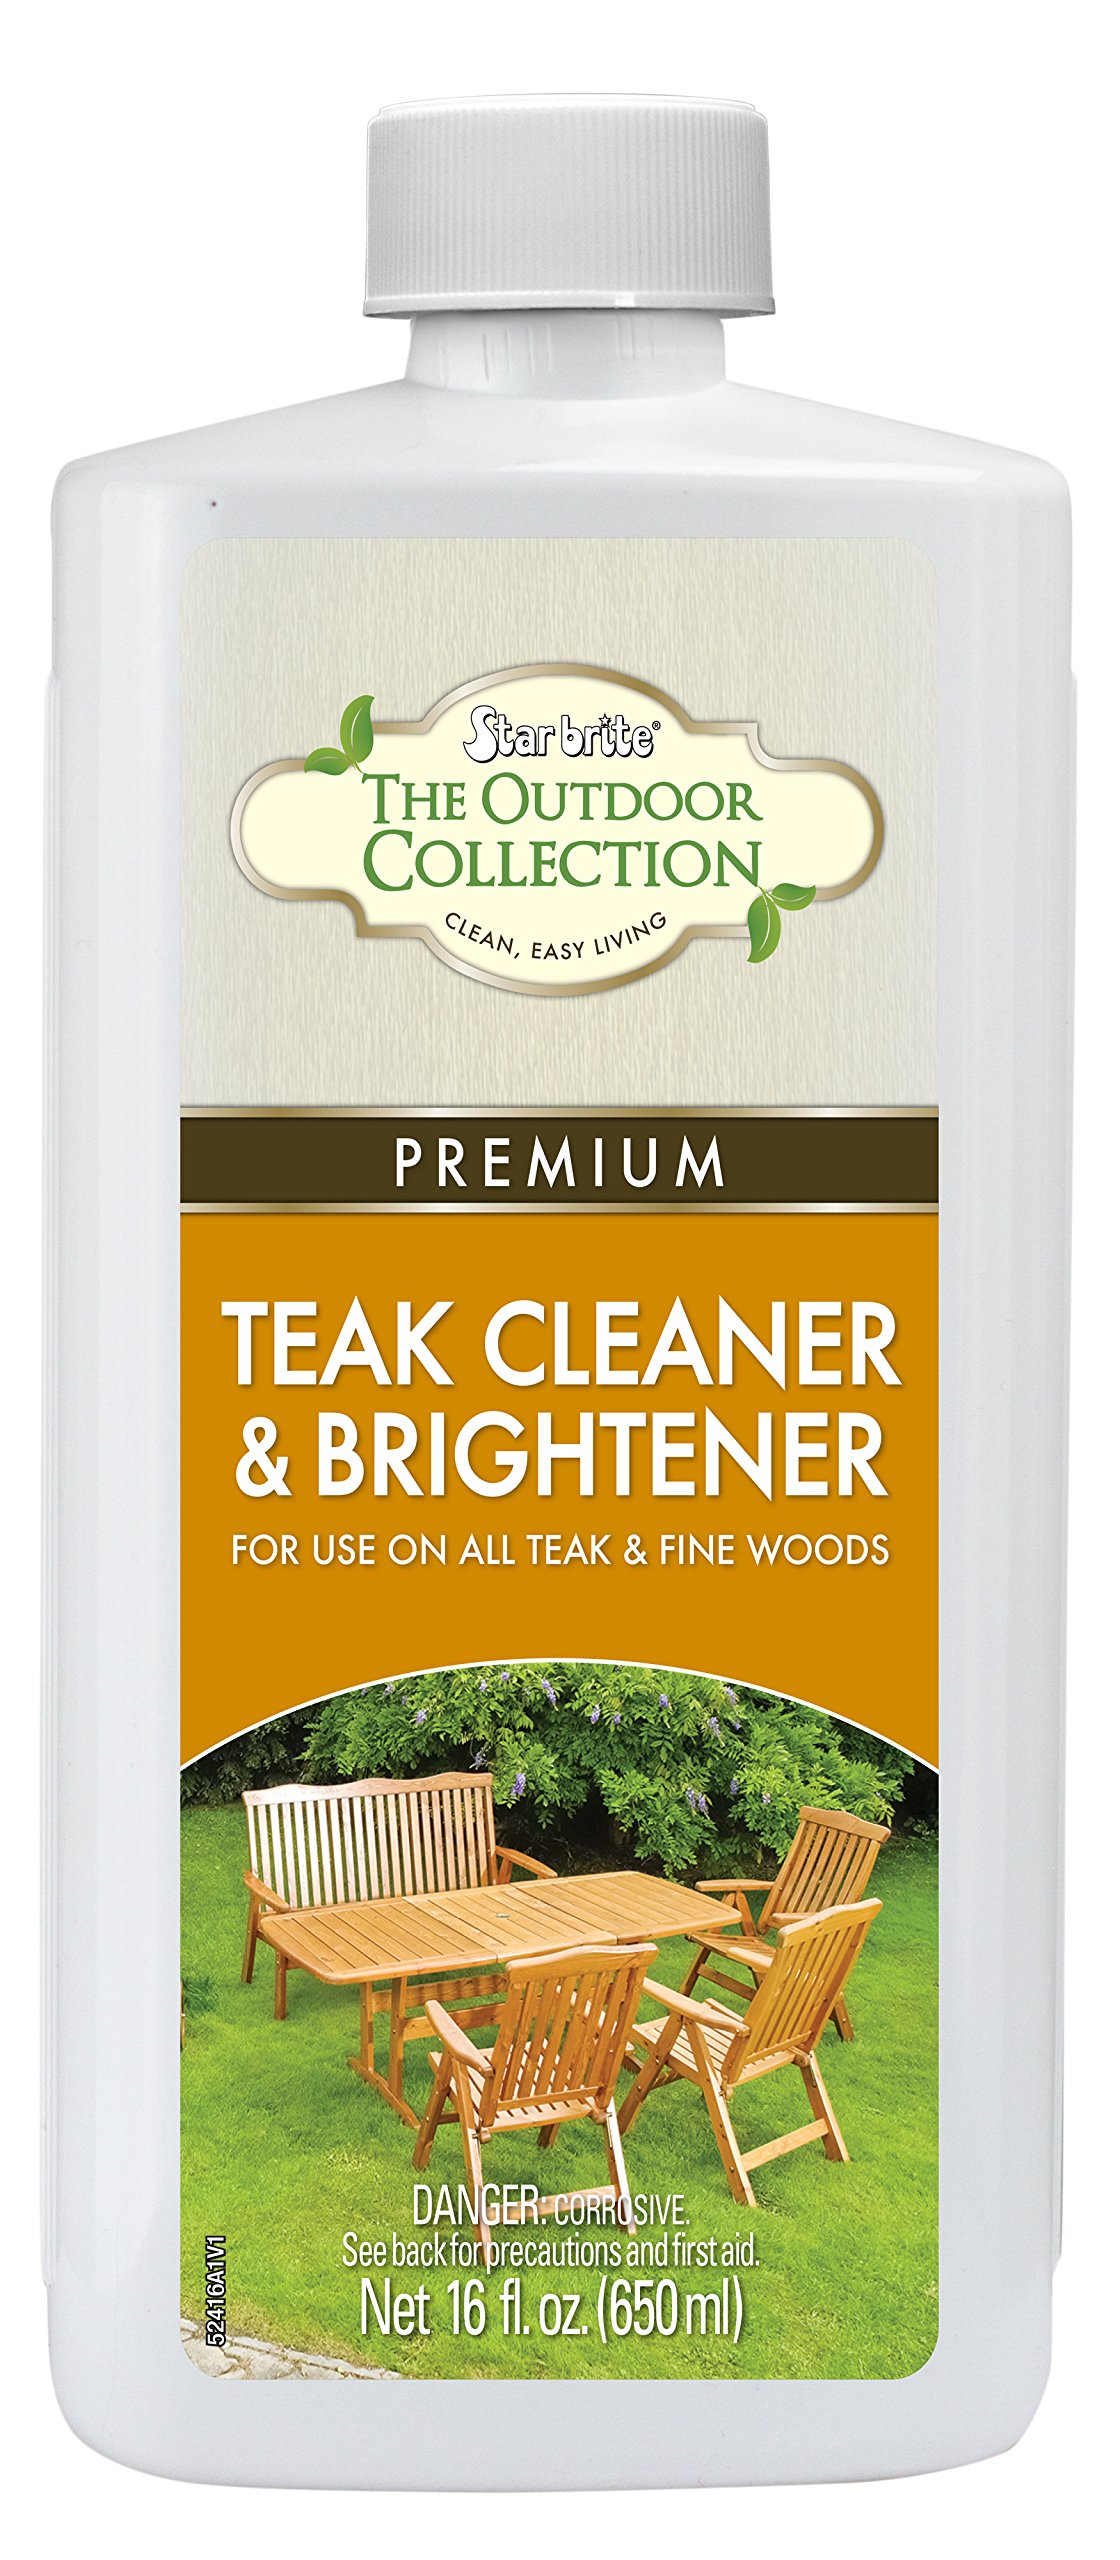 Star brite One-Step Teak Cleaner & Brightener 16 oz